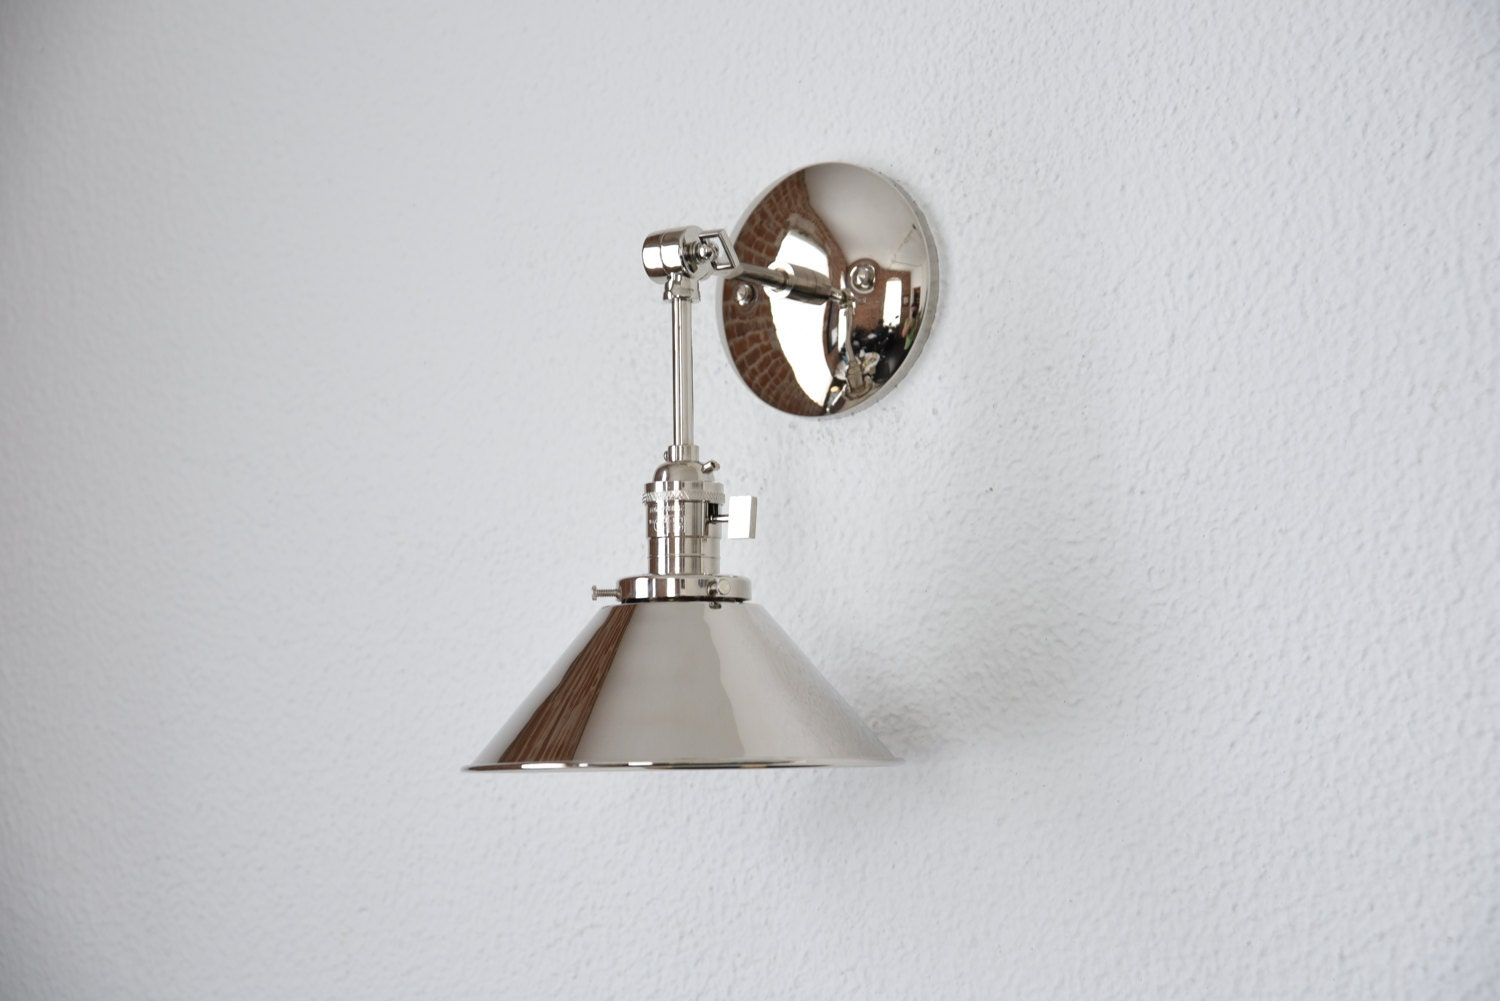 zoom city light kichler sconce wall polished loading loft modern nickel kic